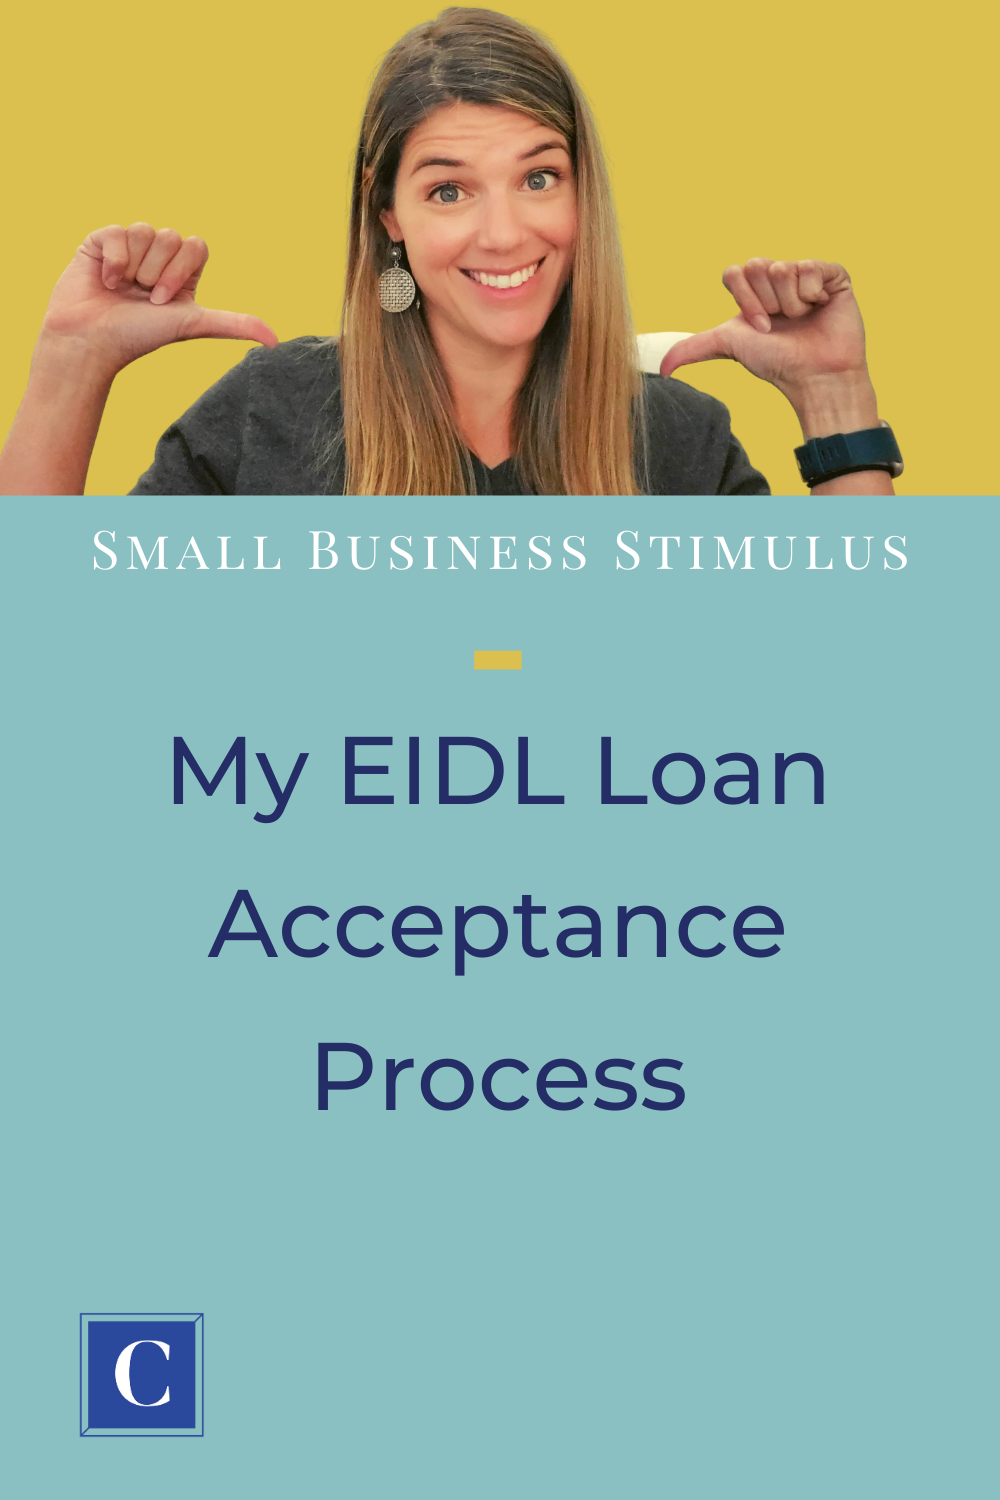 Accepting An Eidl Loan How Much To Ask For In 2020 Financial Management Small Business Finance Managing Finances